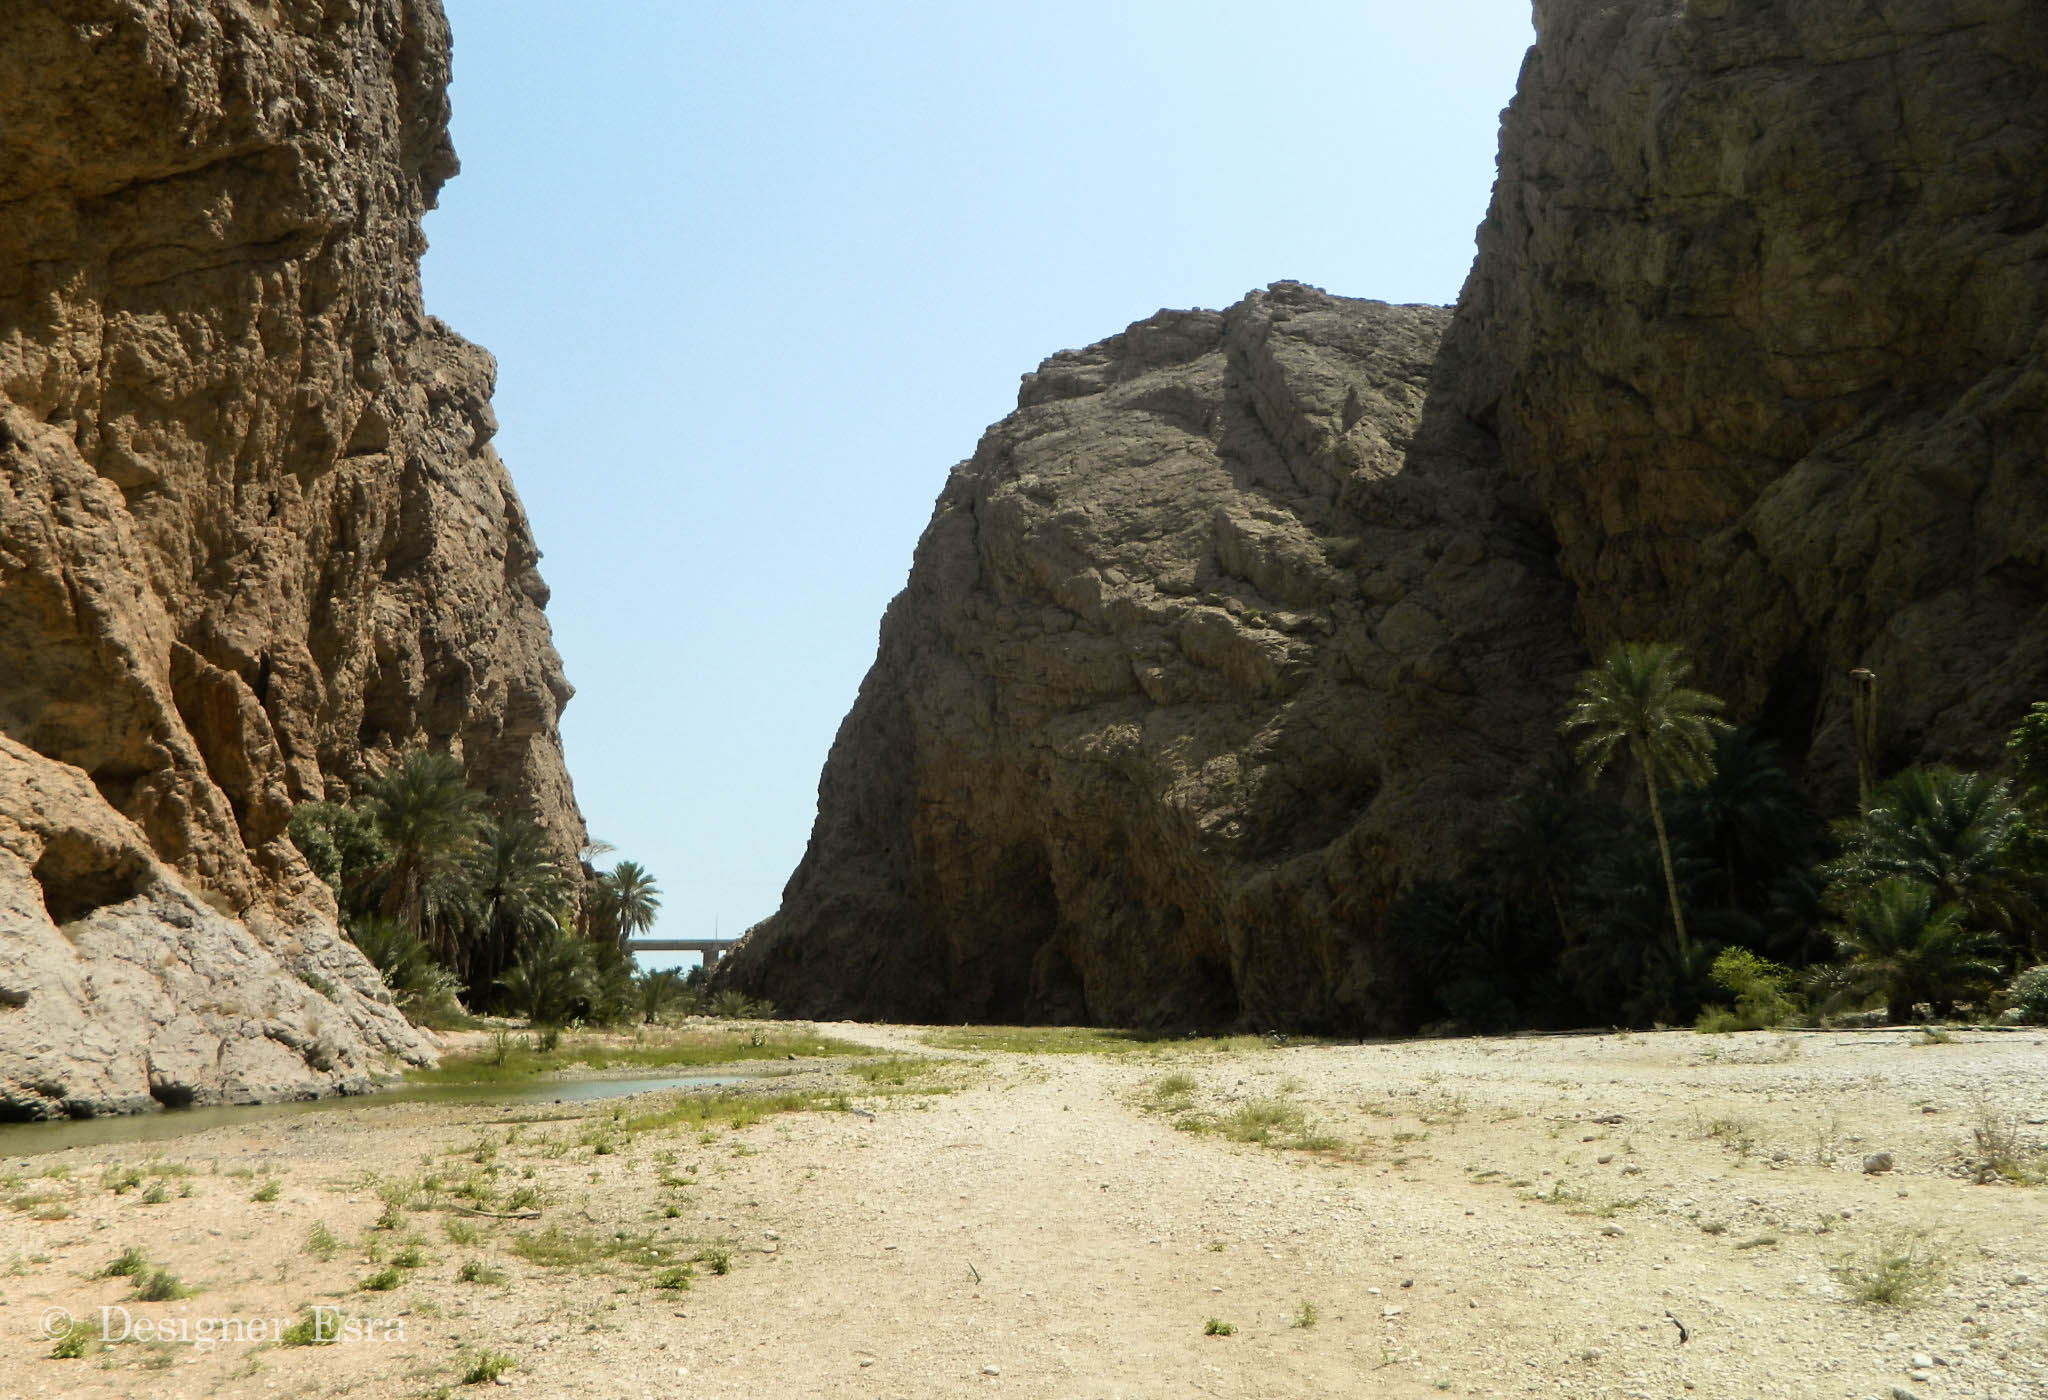 Muscat Valley Wady Shab